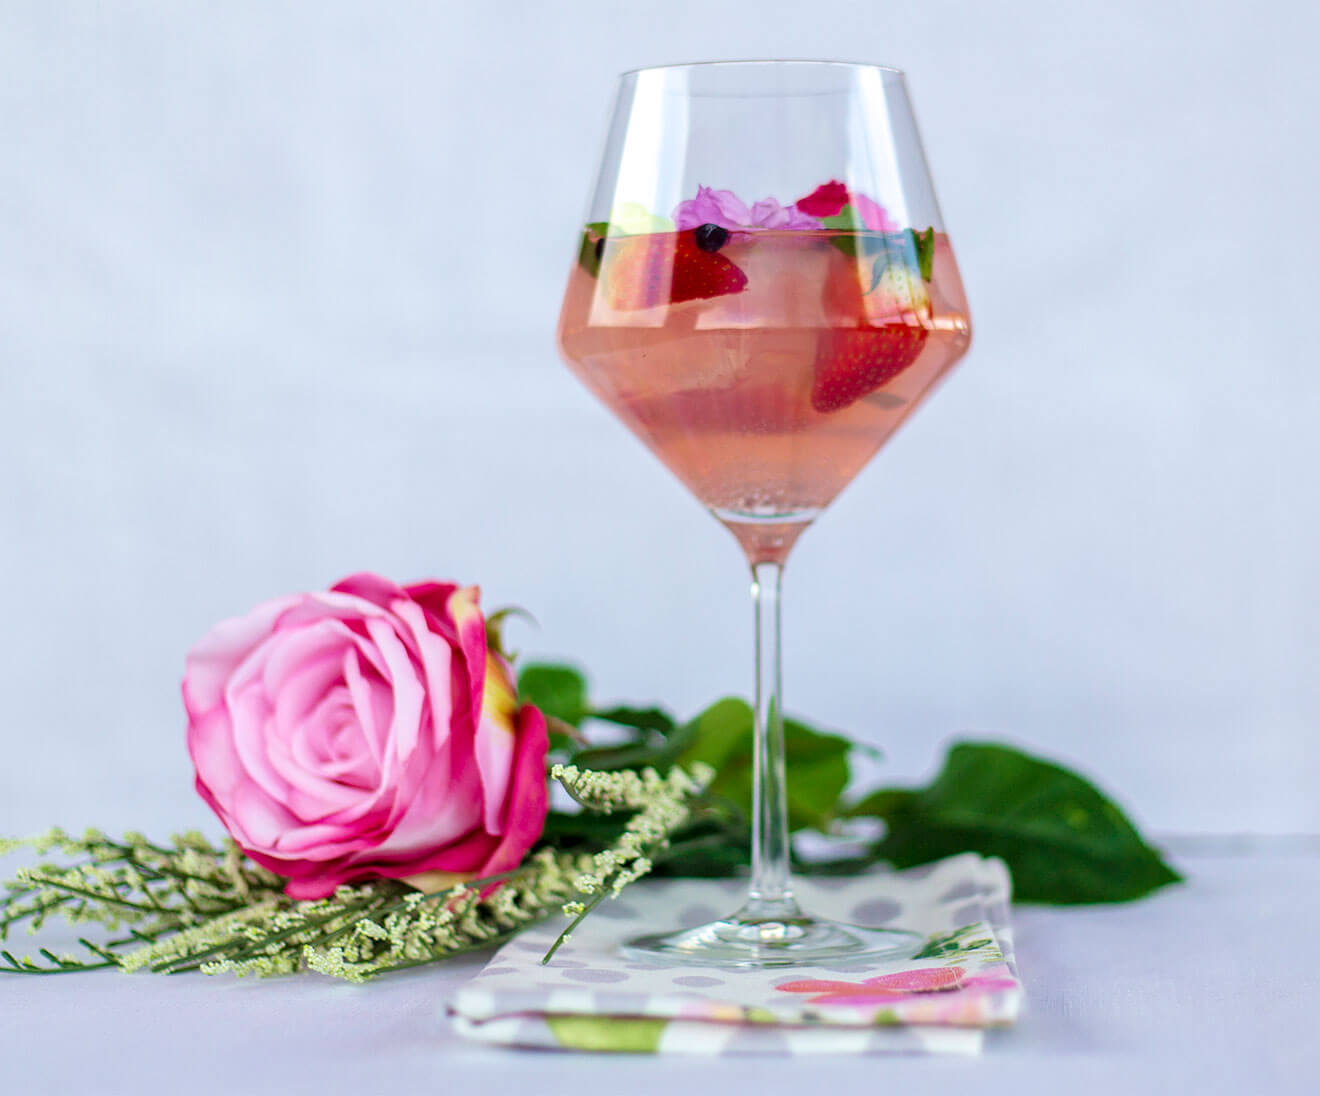 Spanish Rosa GinTonic, rose with cocktail, strawberry garnish